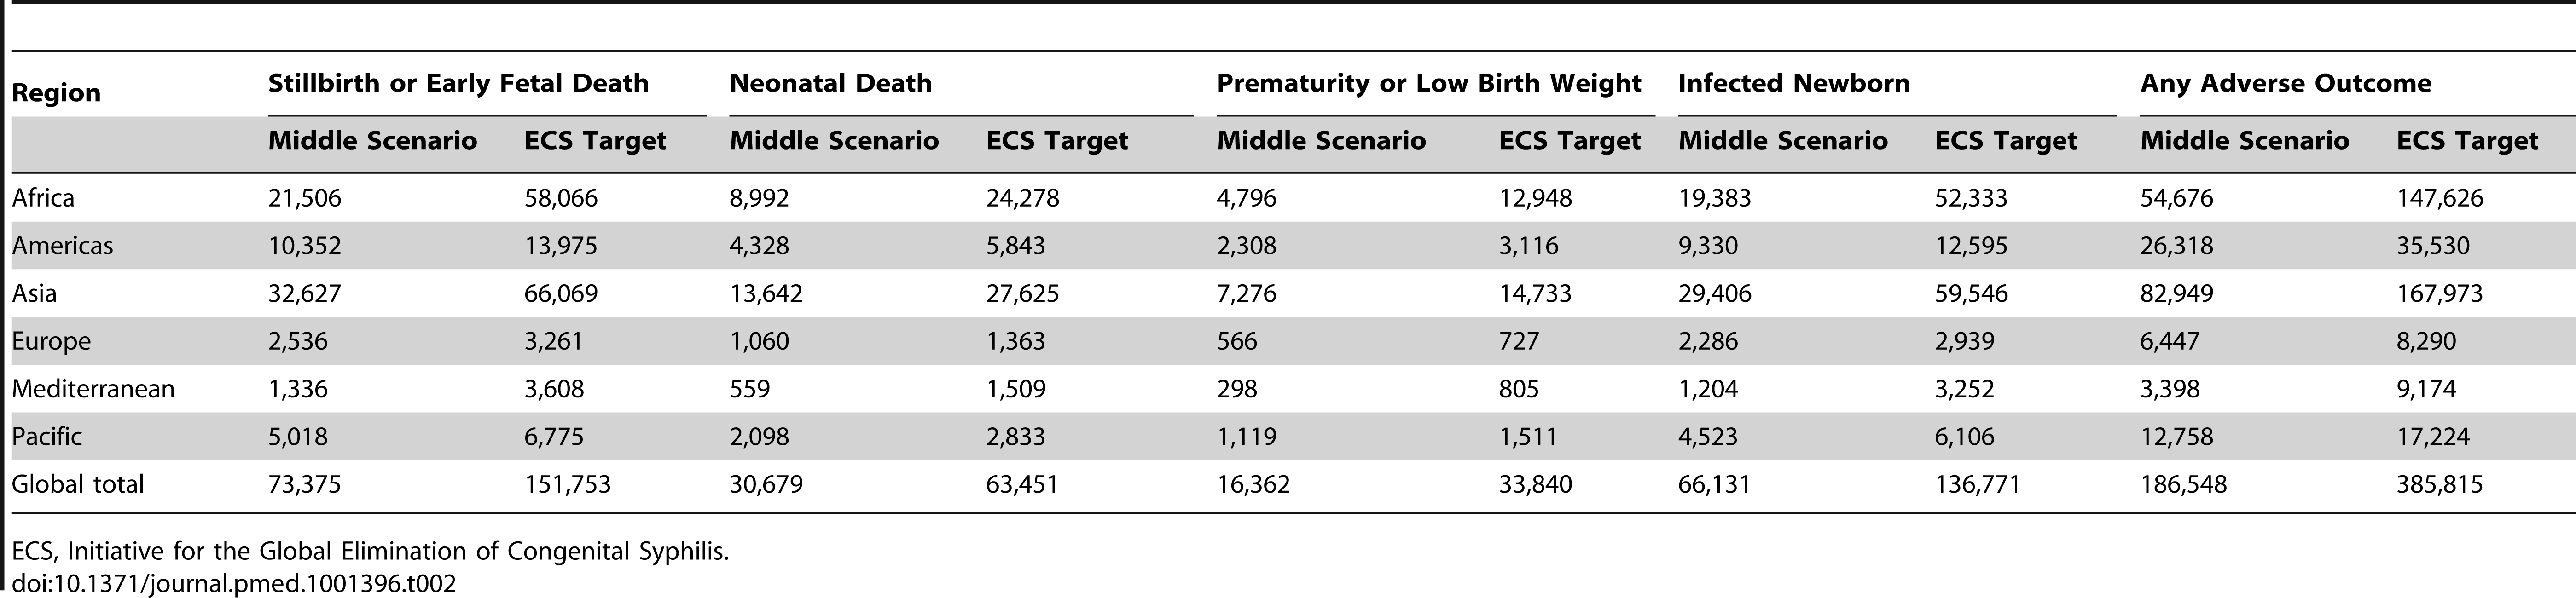 Estimated number of adverse outcomes associated with syphilis in pregnancy averted in the middle scenario in 2008, and if Initiative for the Global Elimination of Congenital Syphilis targets for 2015 for testing and treatment had been met in 2008.